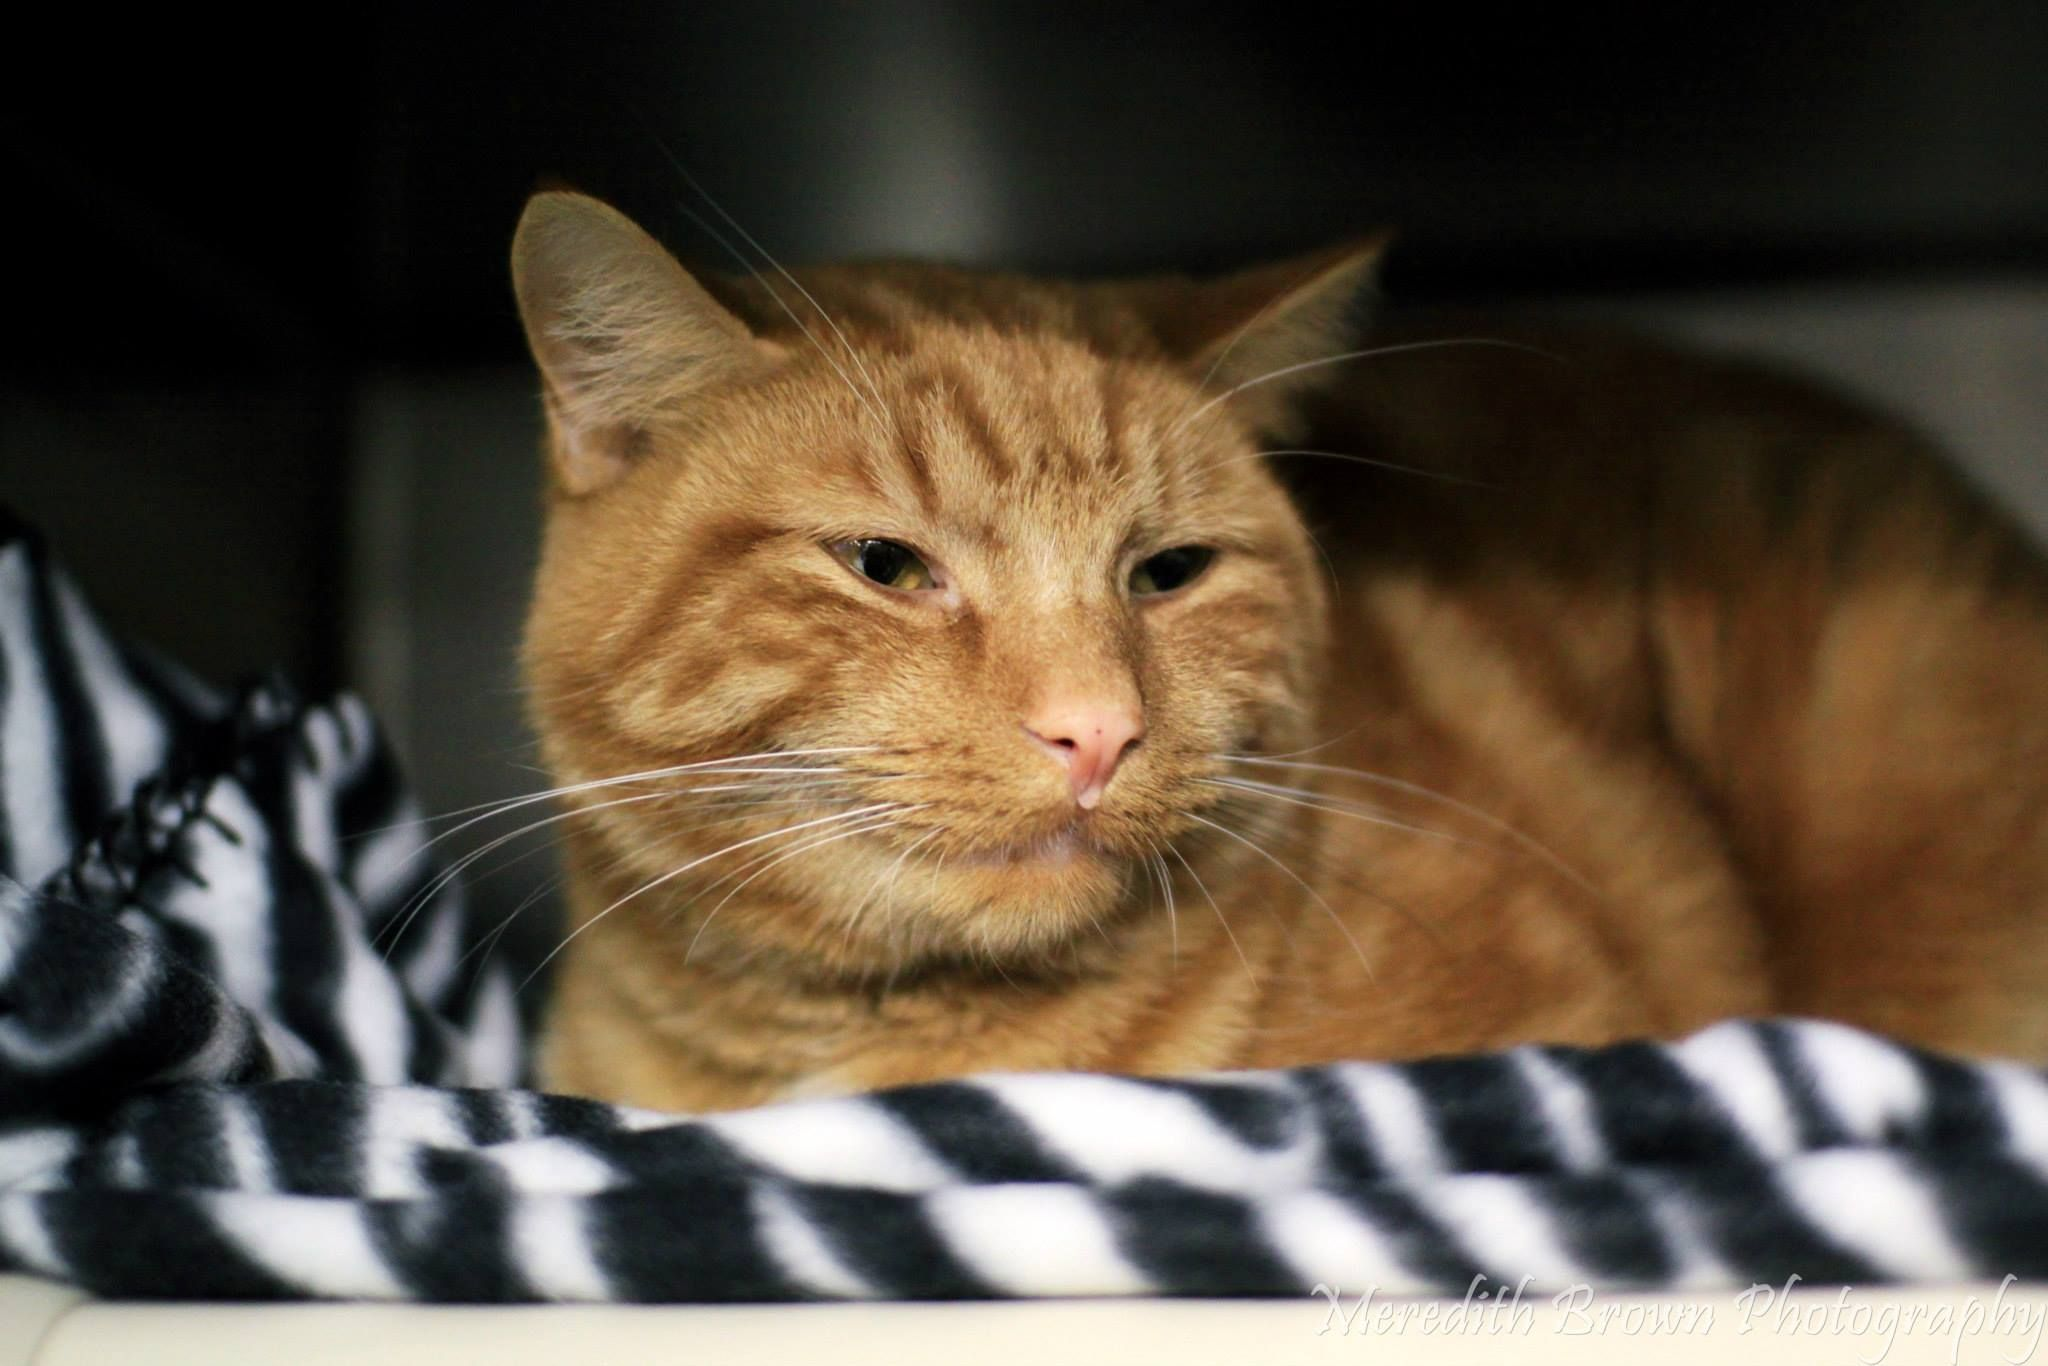 4721 This boy arrived at the shelter as a stray and would